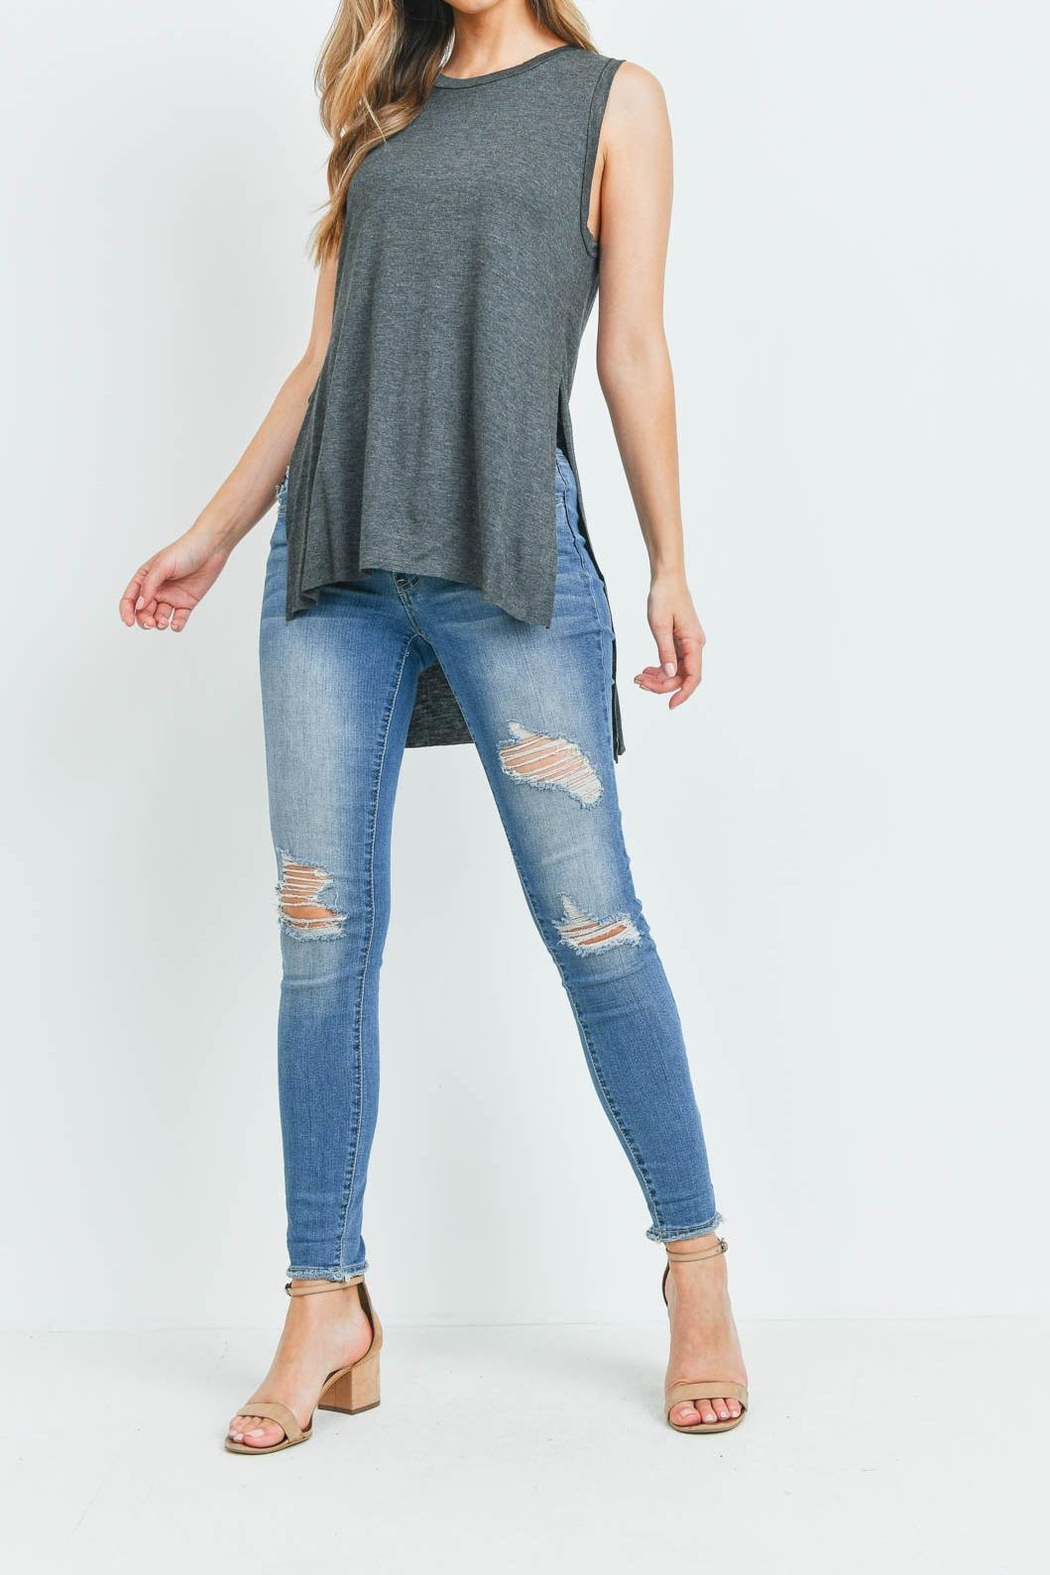 Riah Fashion Charcoal Top - Side Cropped Image